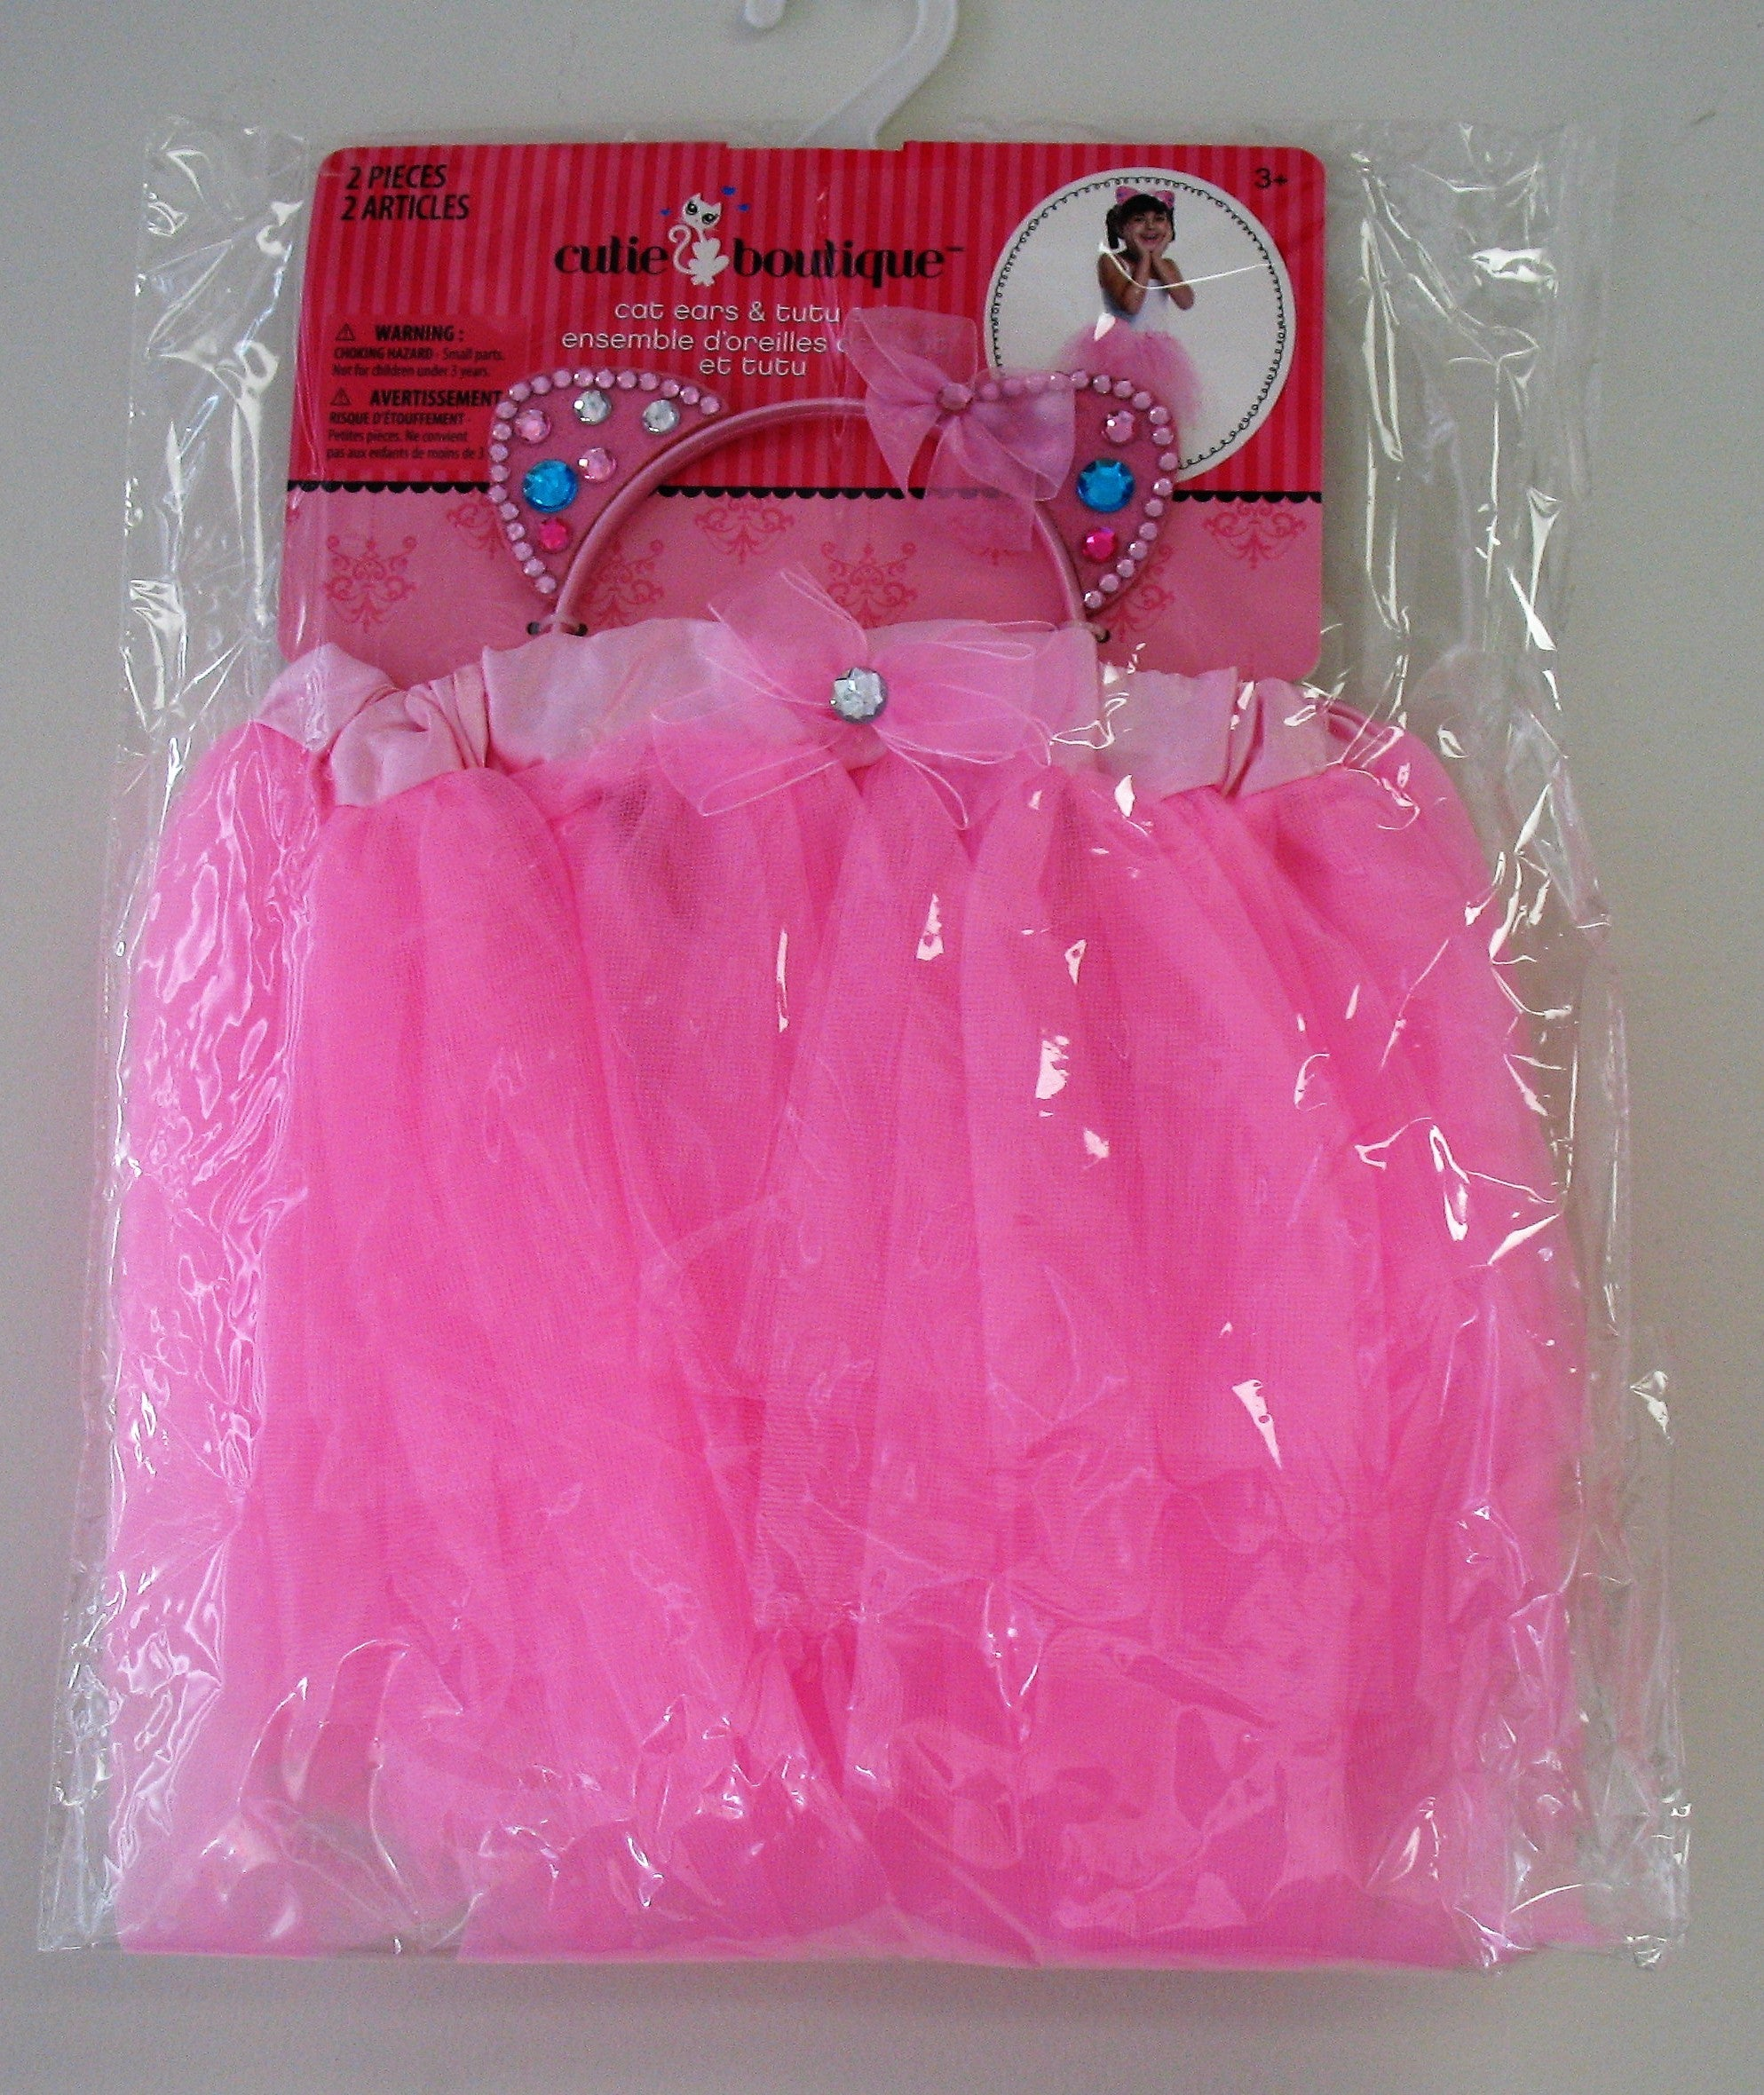 Brand New, Cutie Boutique Cat Ears Headband & Girl's Pink Tutu for Ages 3 & up